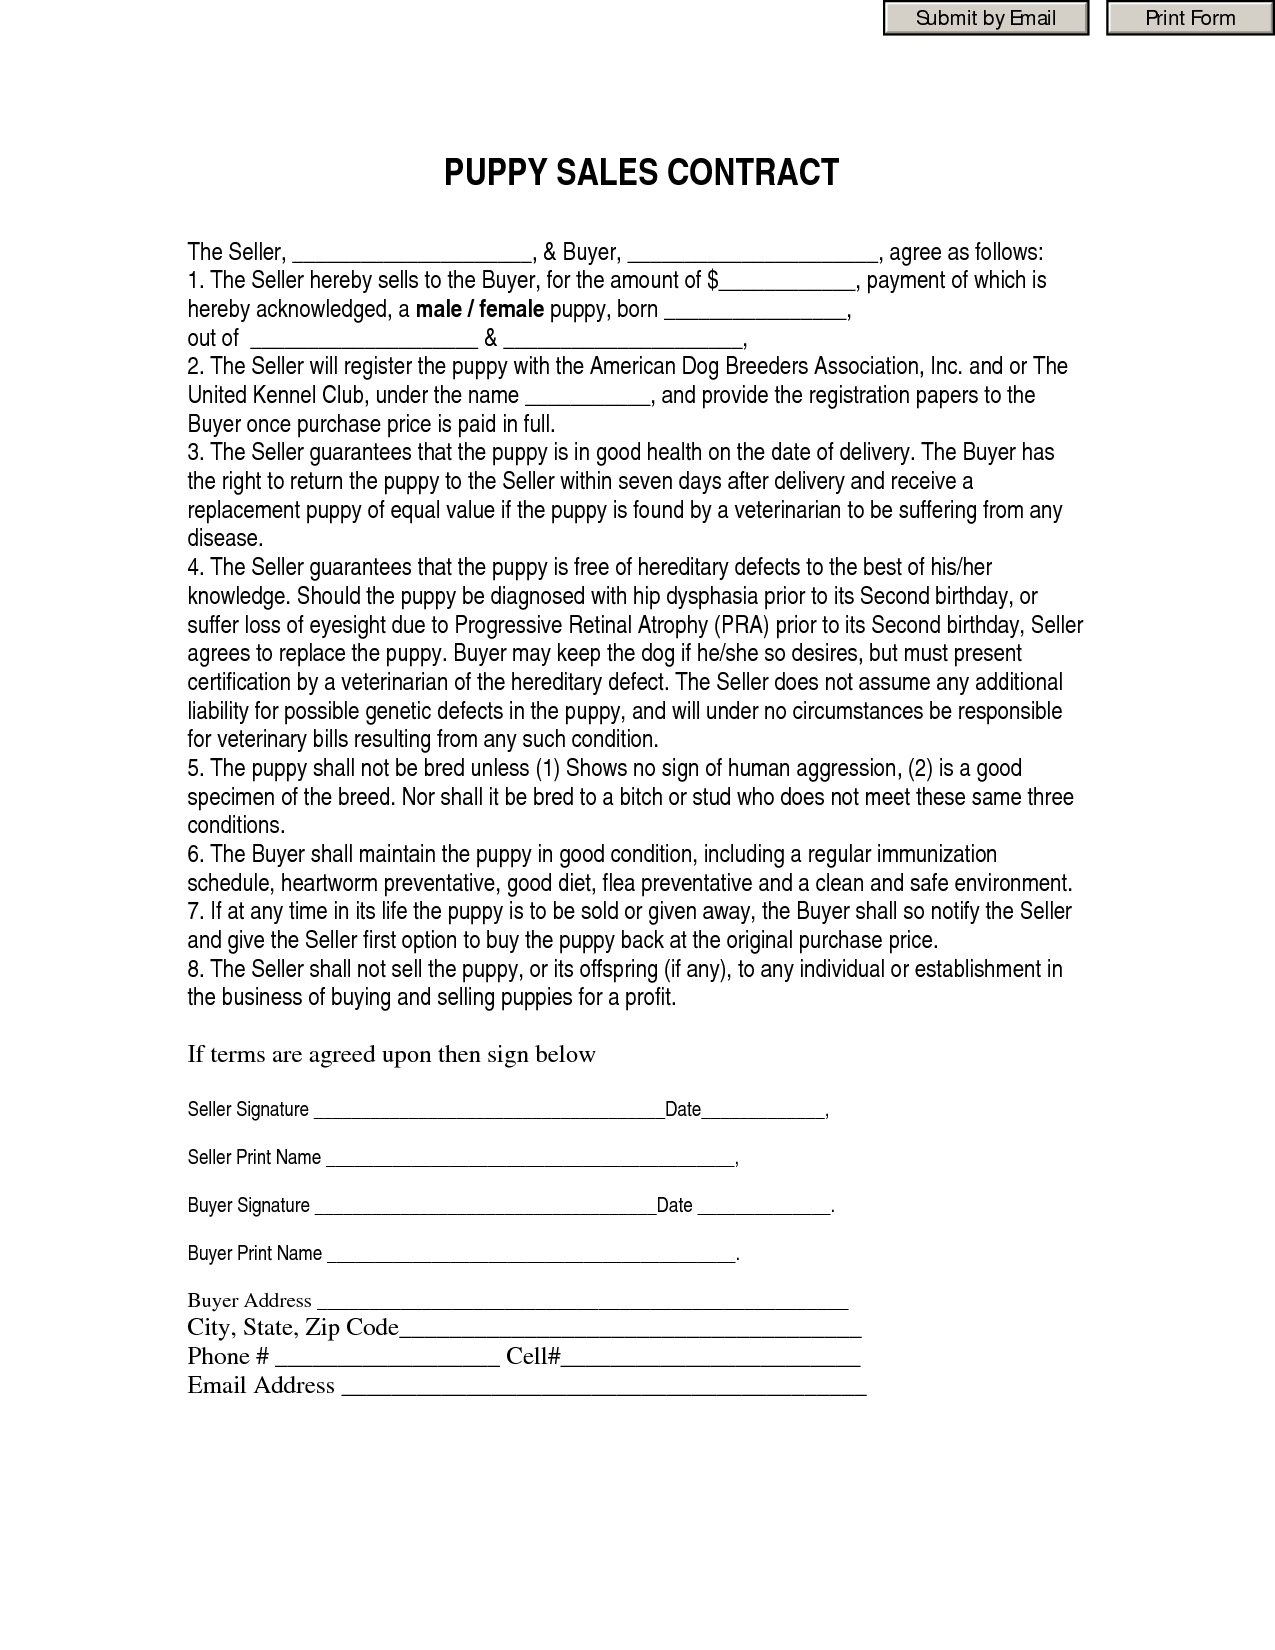 Gallery Of Sample Cover Letter For Real Estate Purchase Offer - Free Printable Puppy Sales Contract